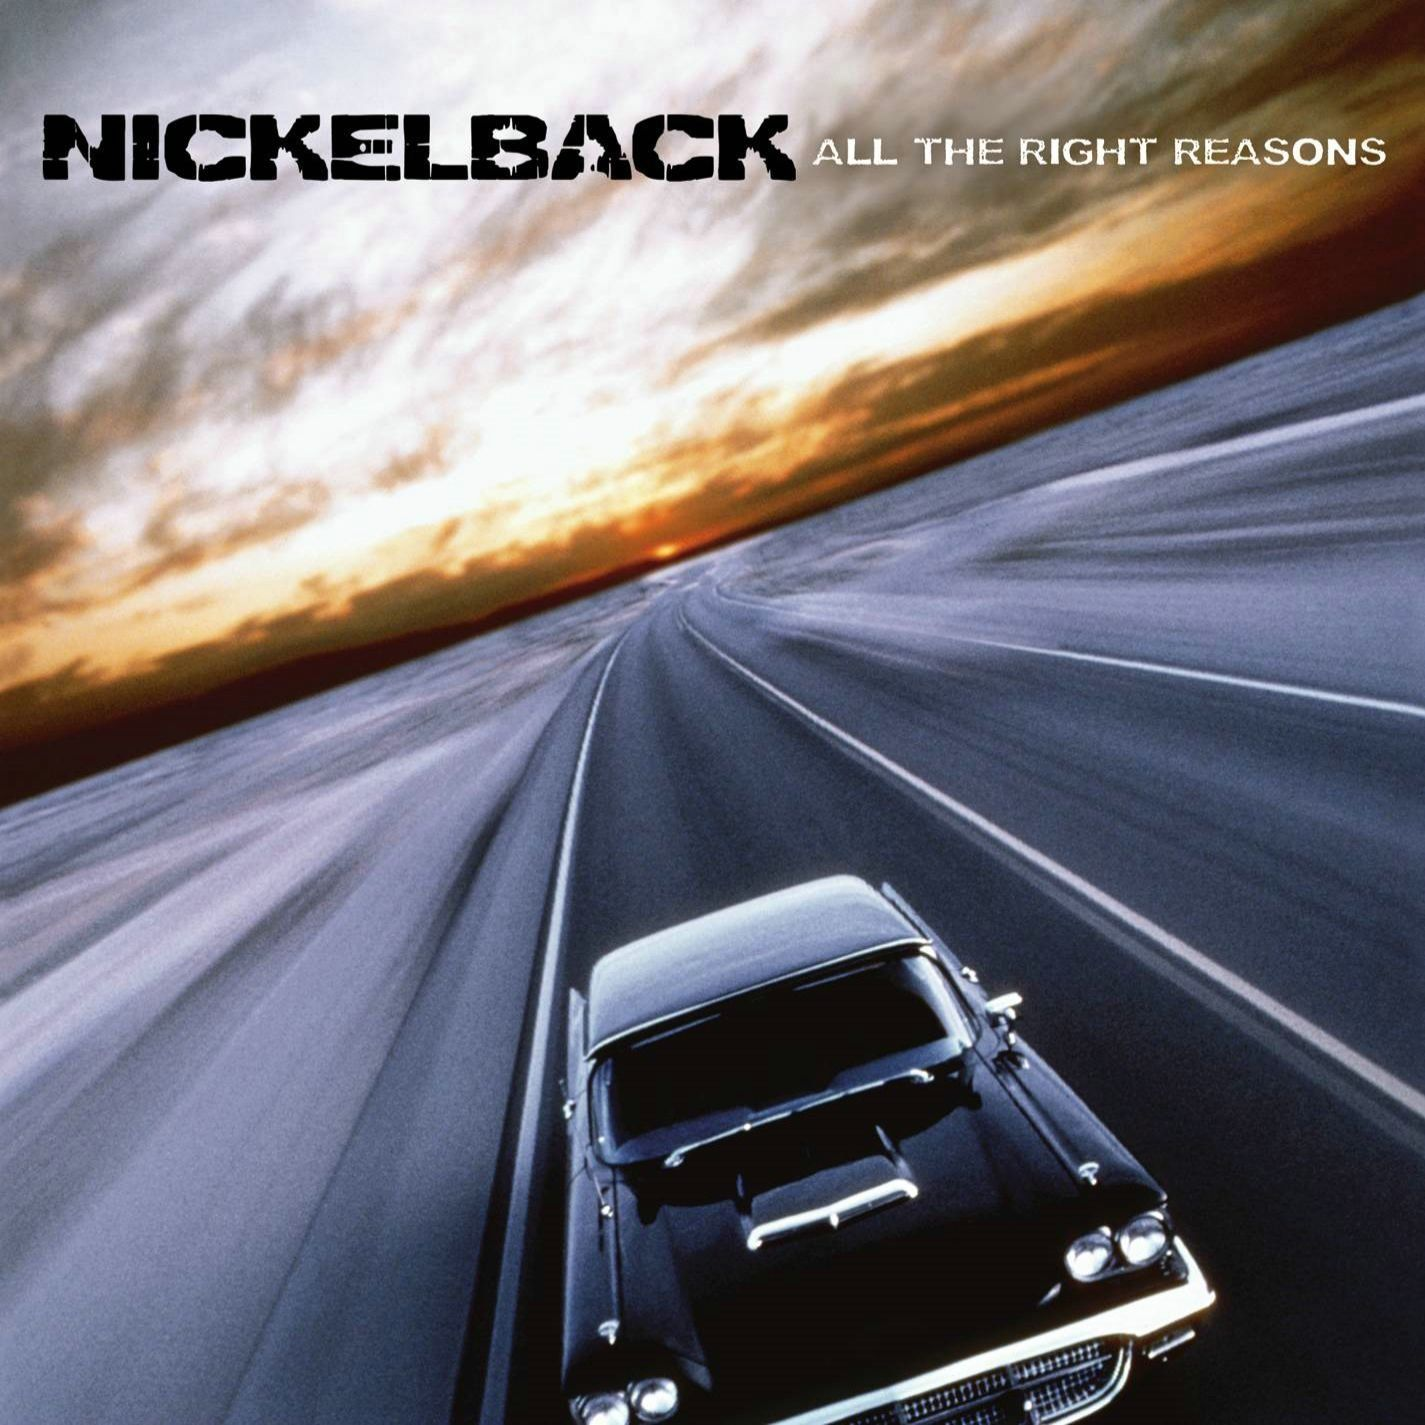 Nickelback - All The Right Reasons album cover